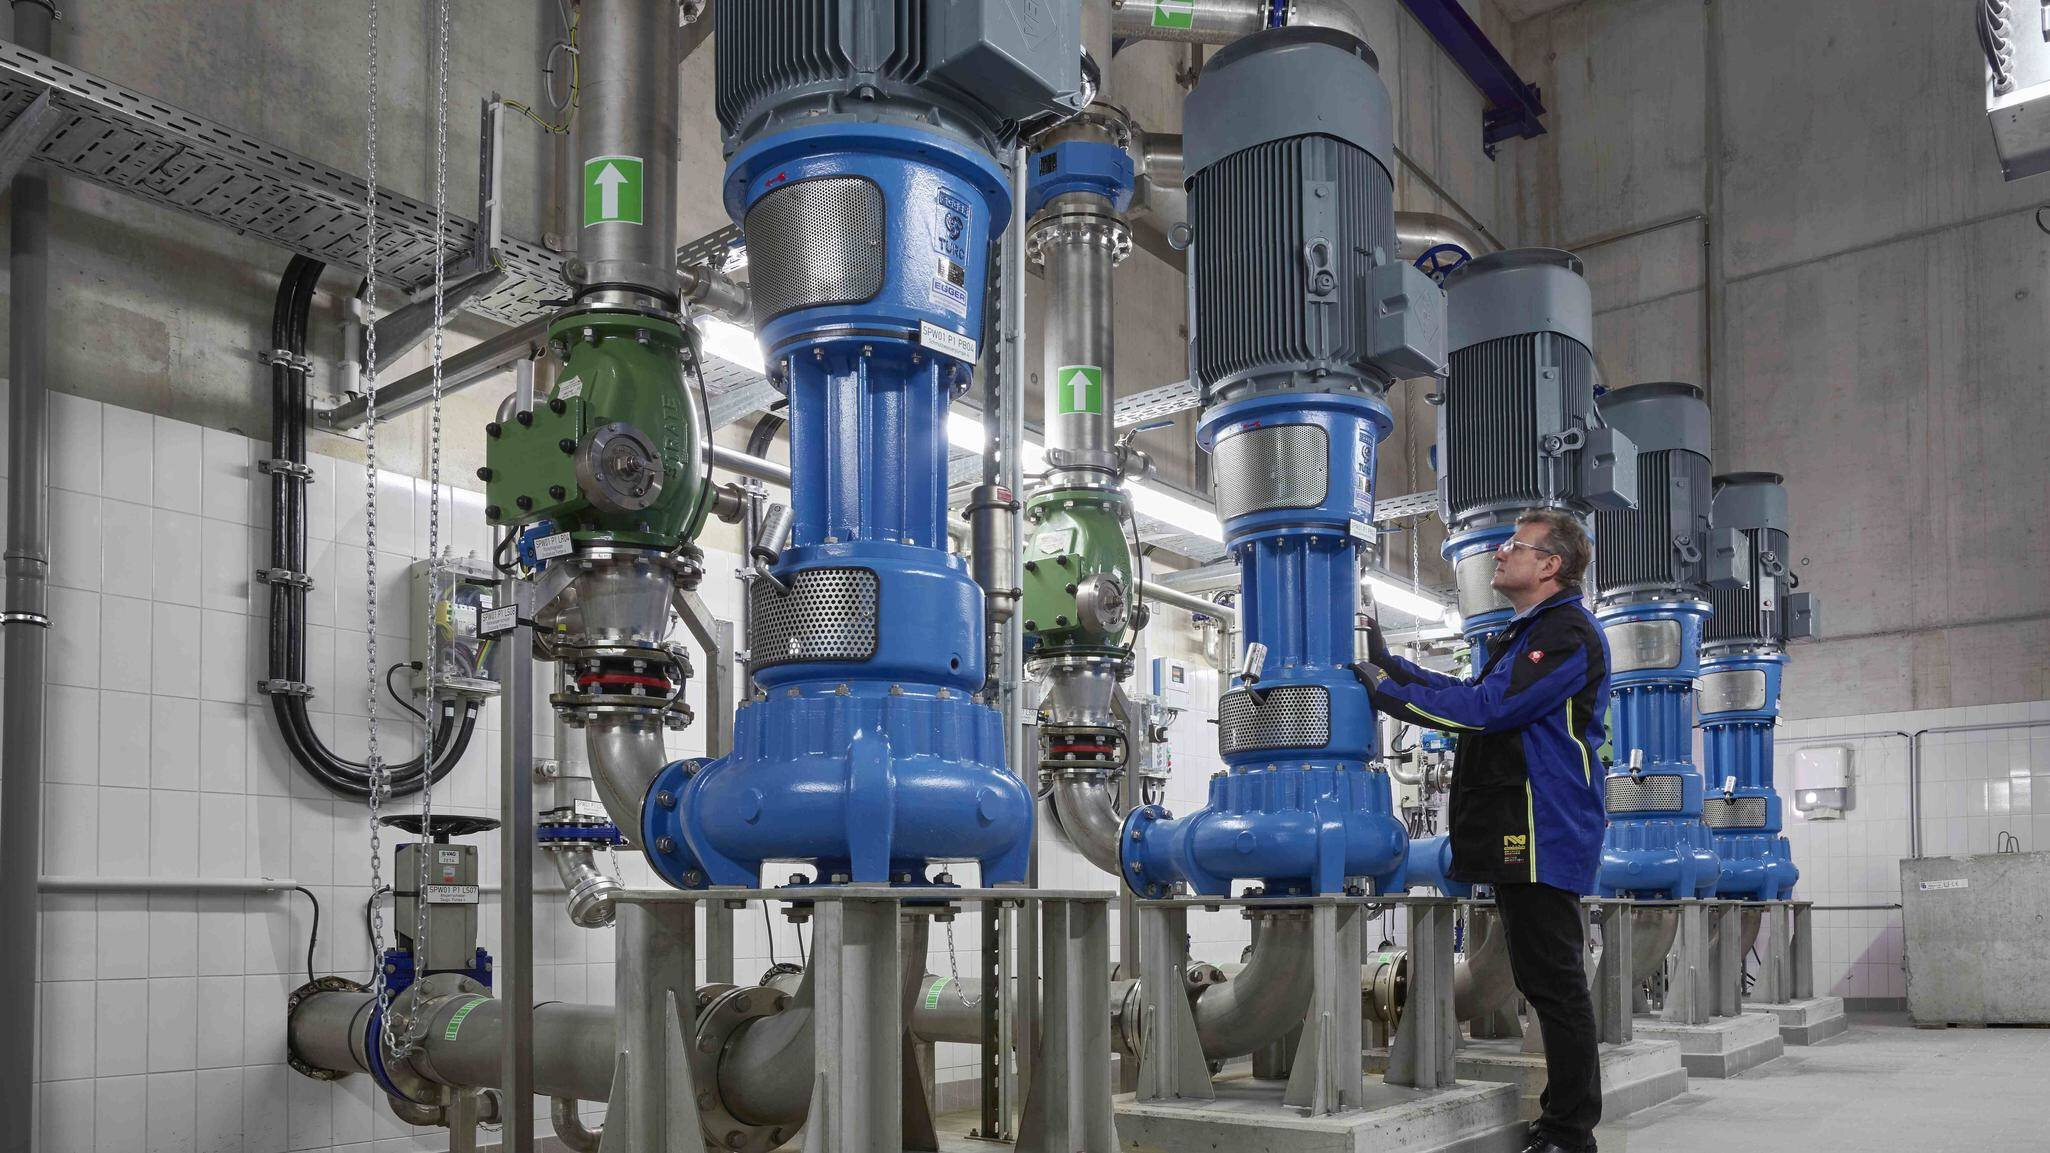 Gallery image 1 - Fraport pumping station (Airport Frankfurt) with Egger raw sewage Turo TA impeller in vertical design. For challenging wastewater with rags.